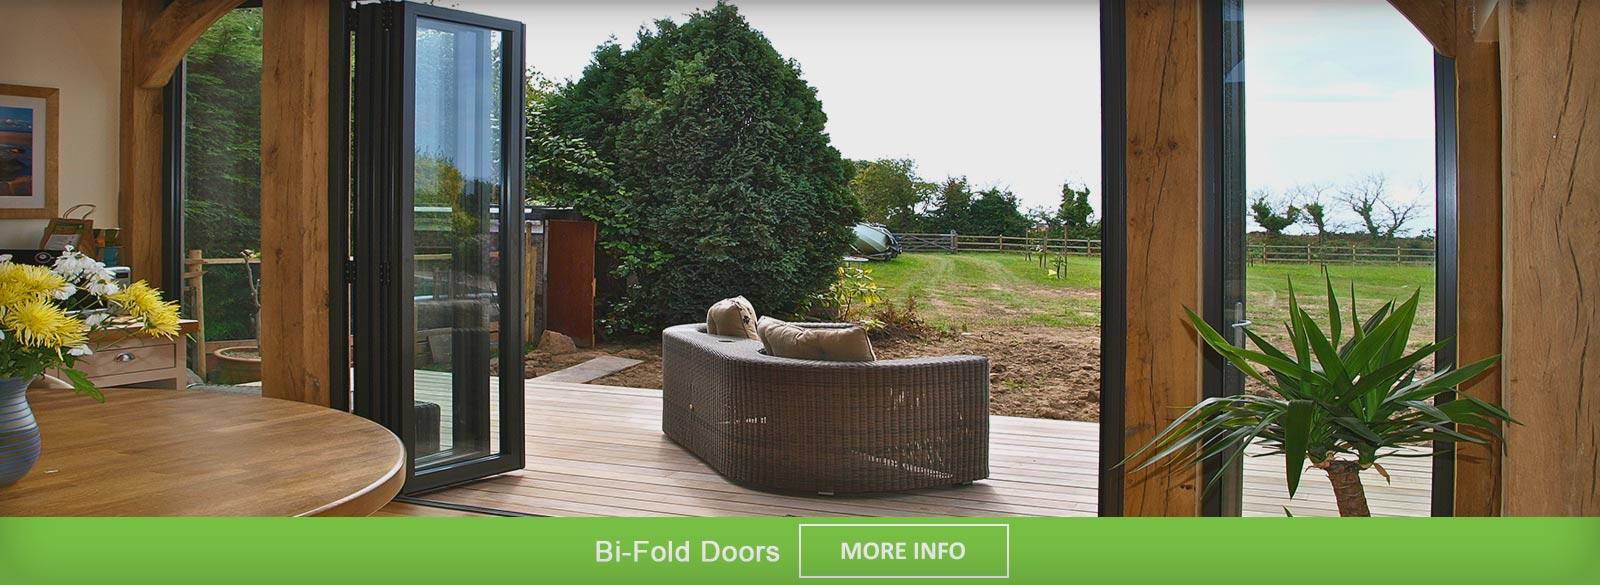 Brown Aluminium Bi Fold doors viewed from outside when doors are closed